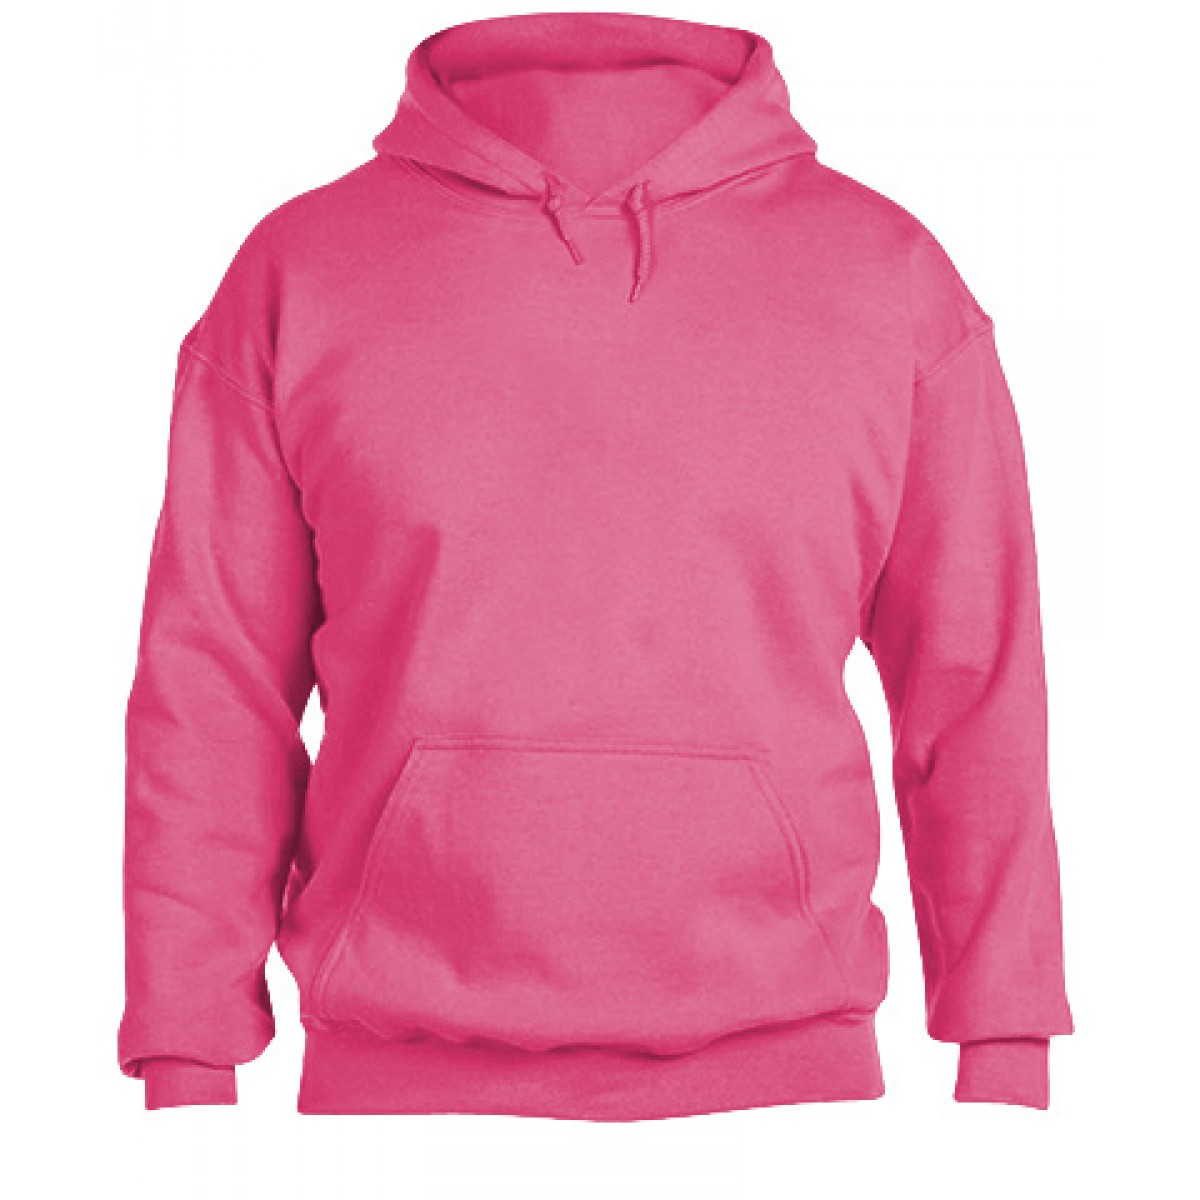 Hooded Sweatshirt 50/50 Heavy Blend -Safety Pink-2XL